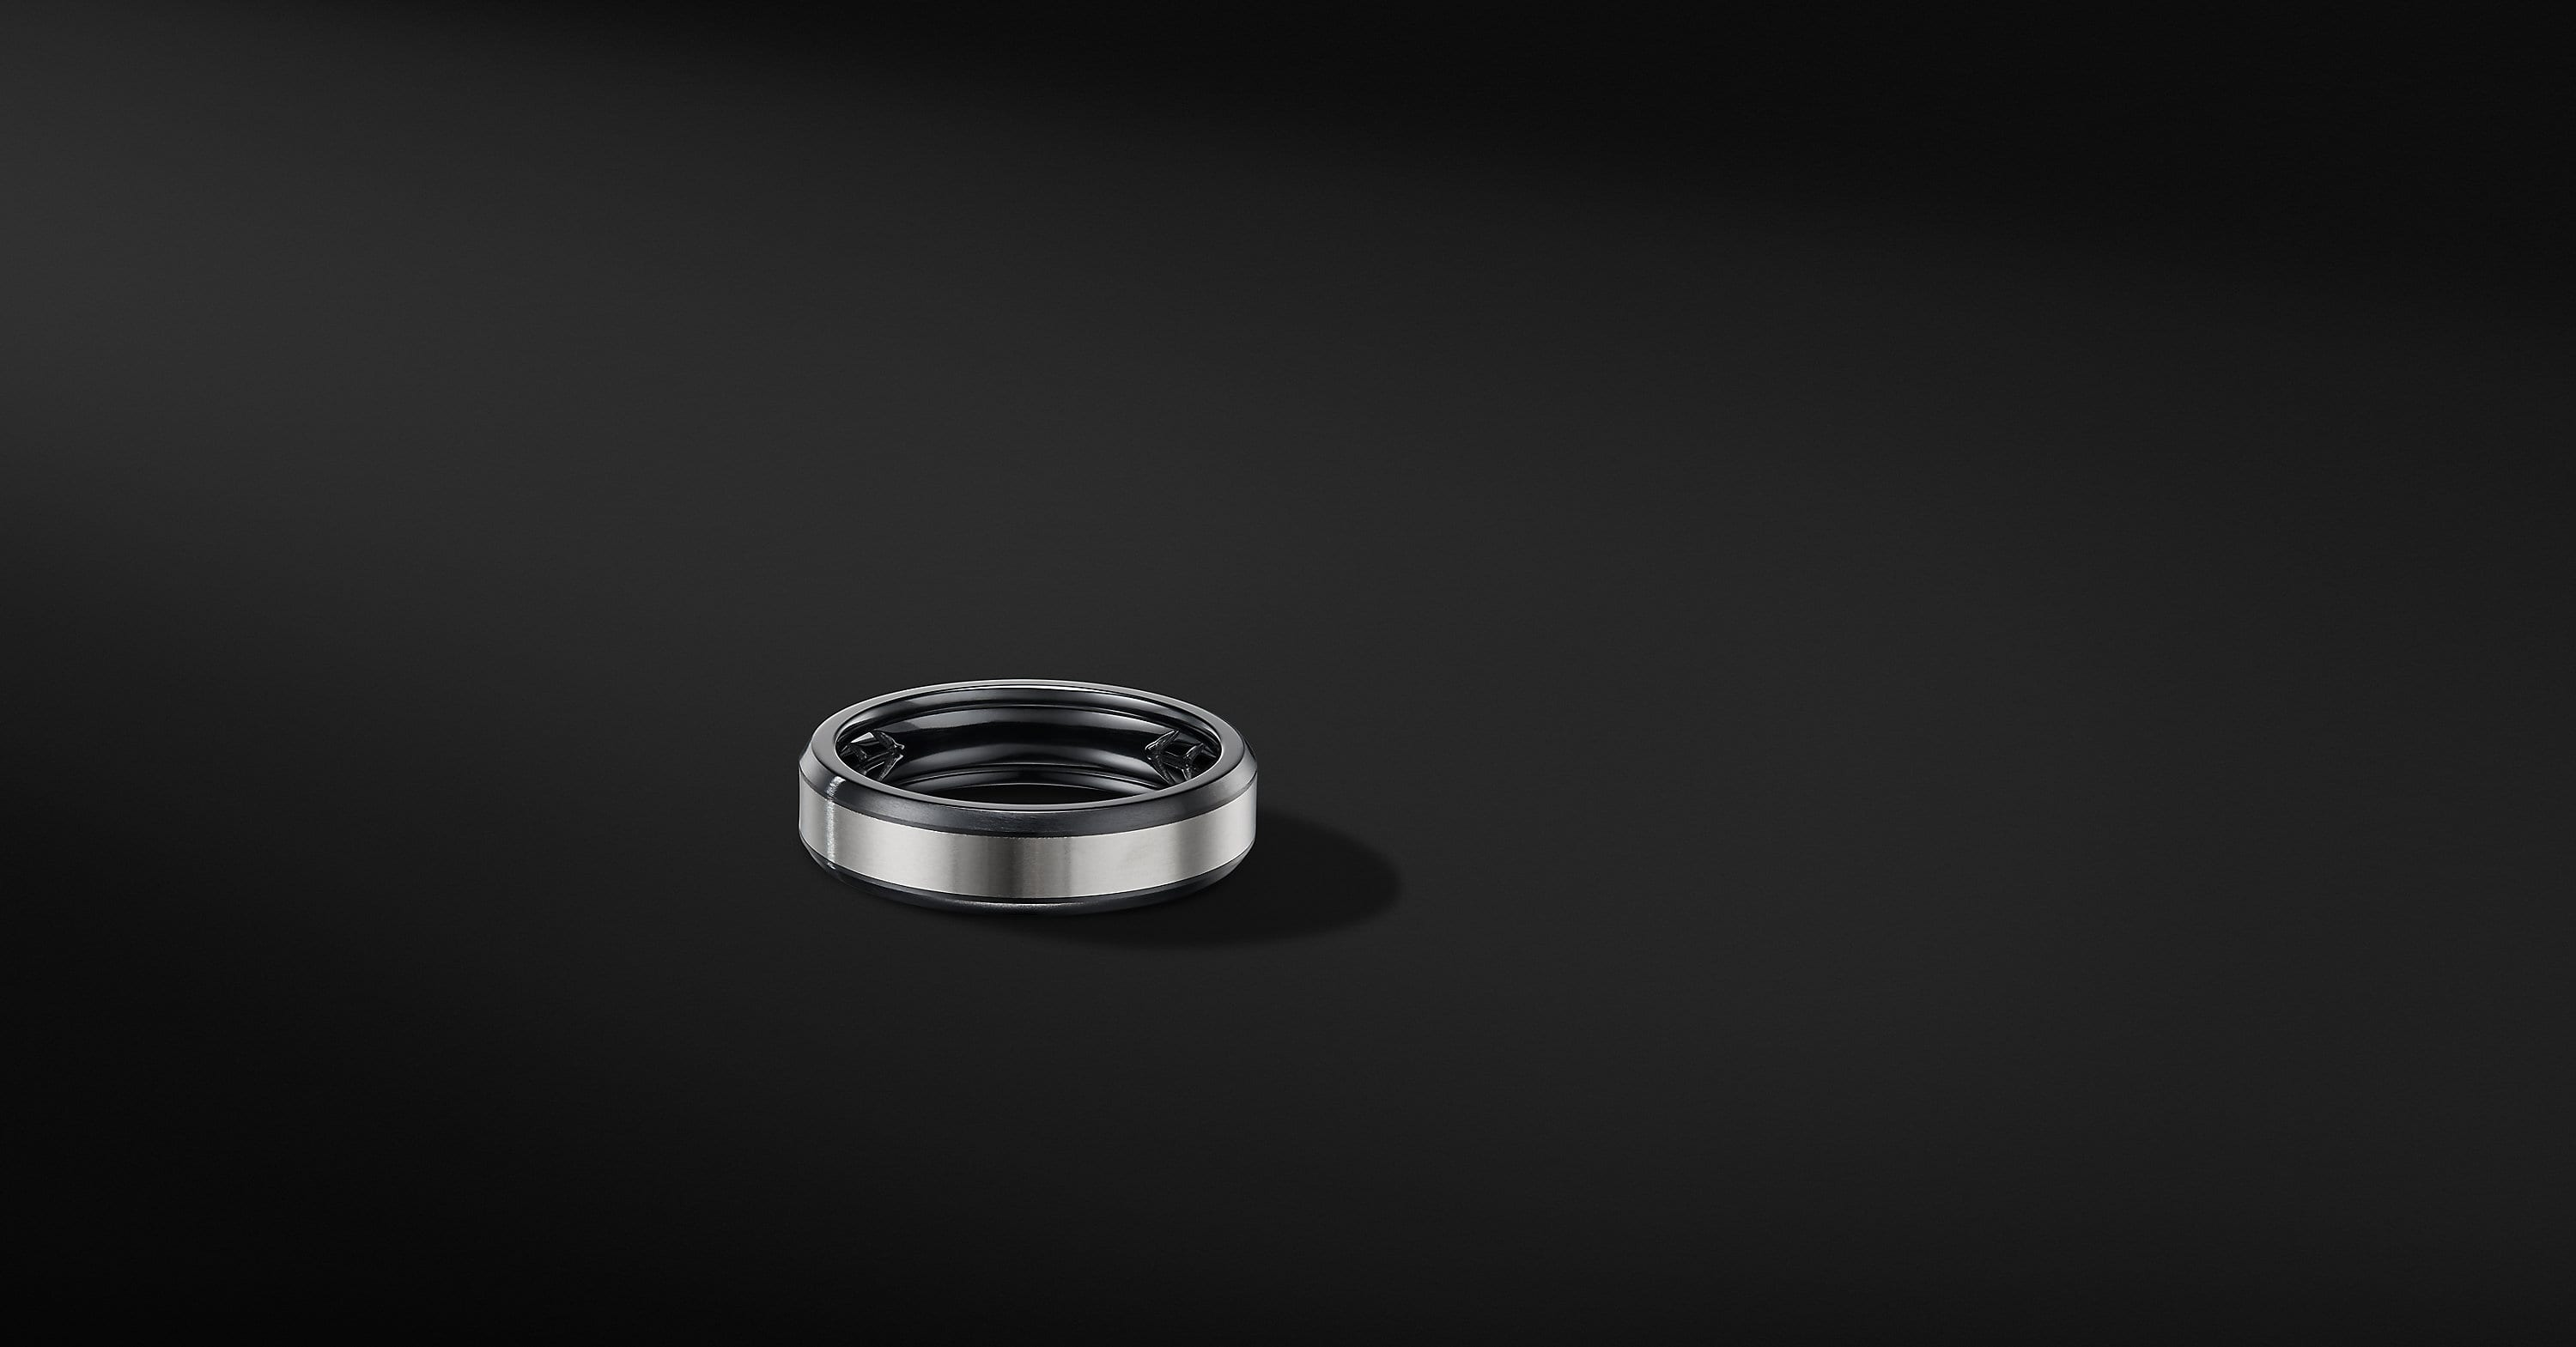 Beveled Band Ring in Black Titanium with Grey Titanium, 6mm